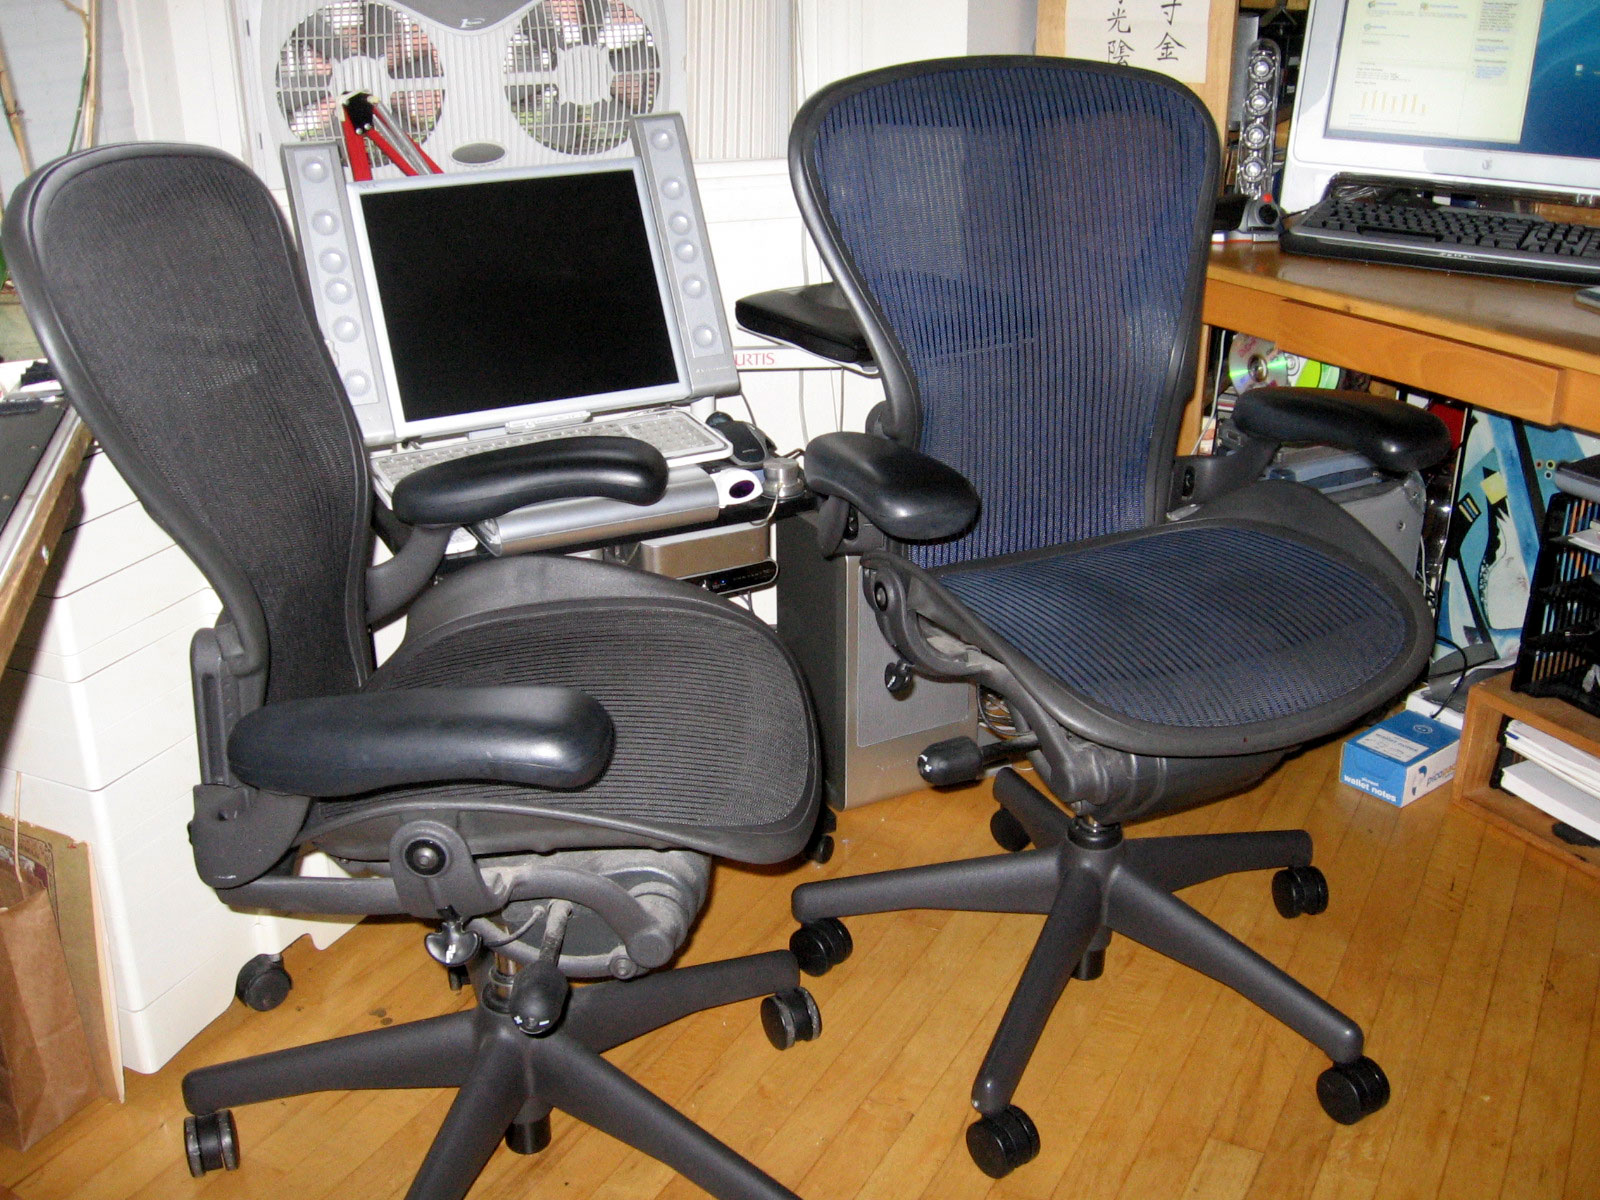 aeron chair sale kitchen chairs ikea sell original fast at high price my 11 nov selling read this first